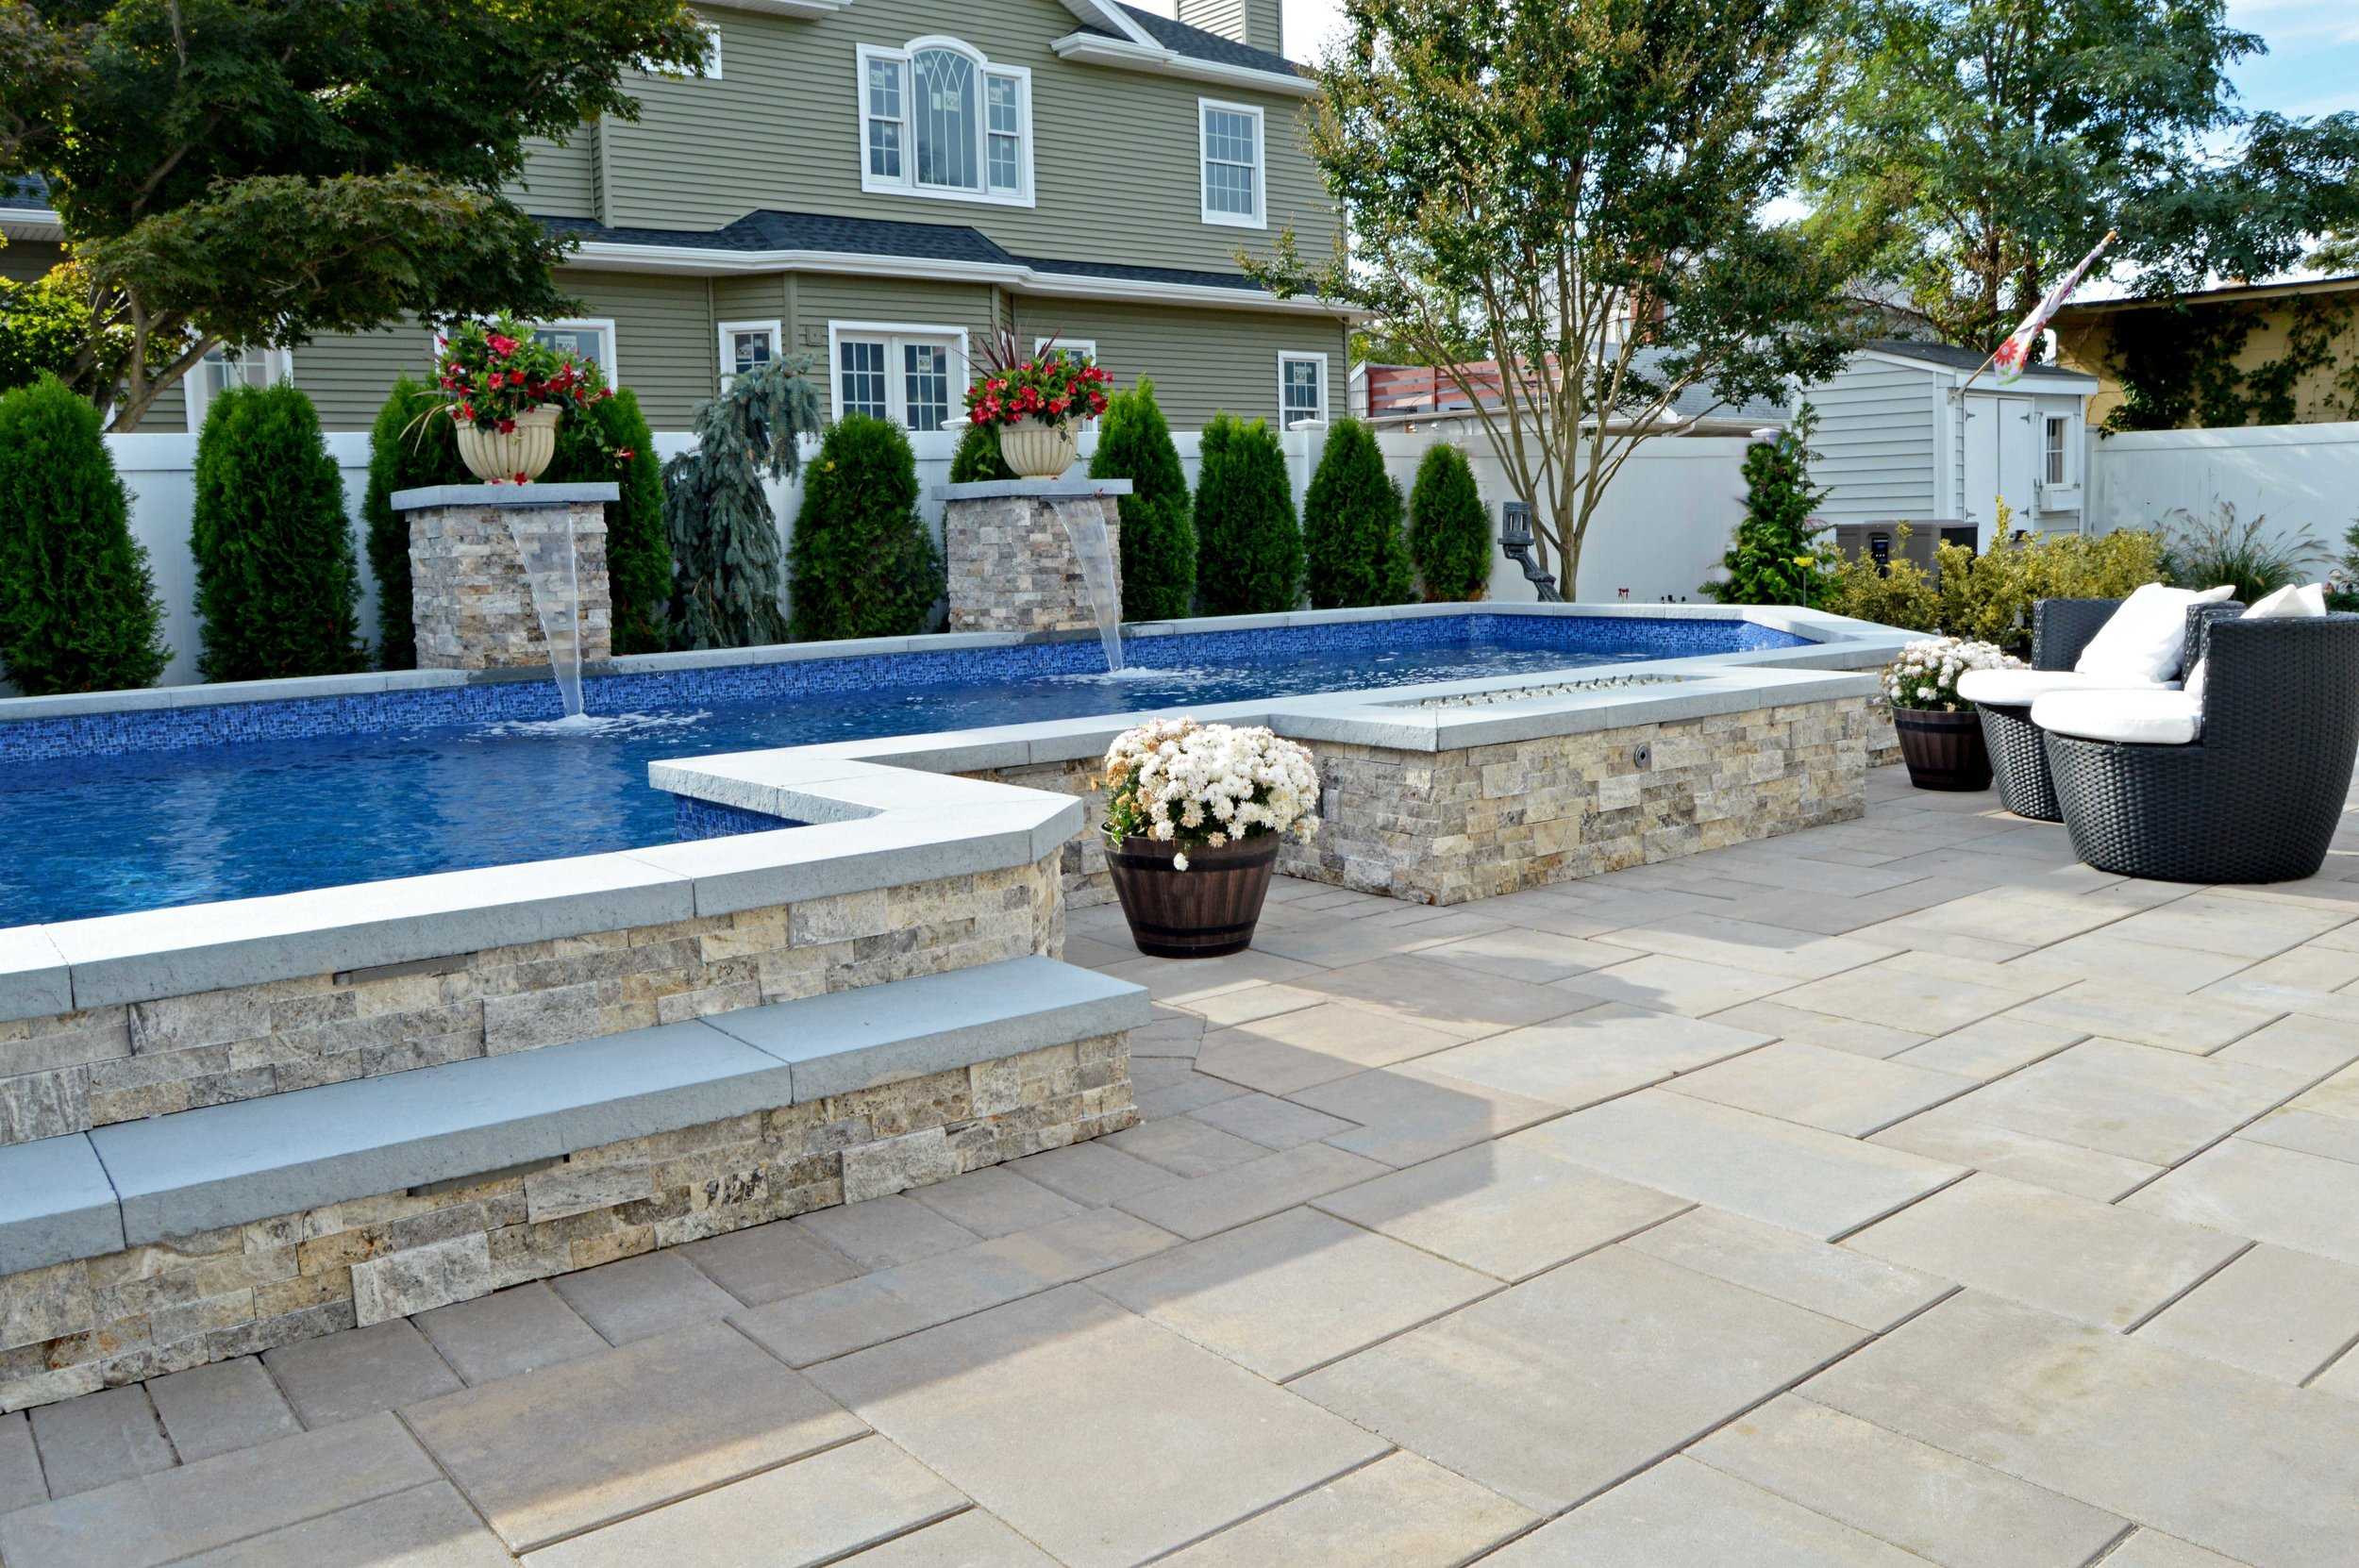 Landscape design in Massapequa NY, with swimming pool patio